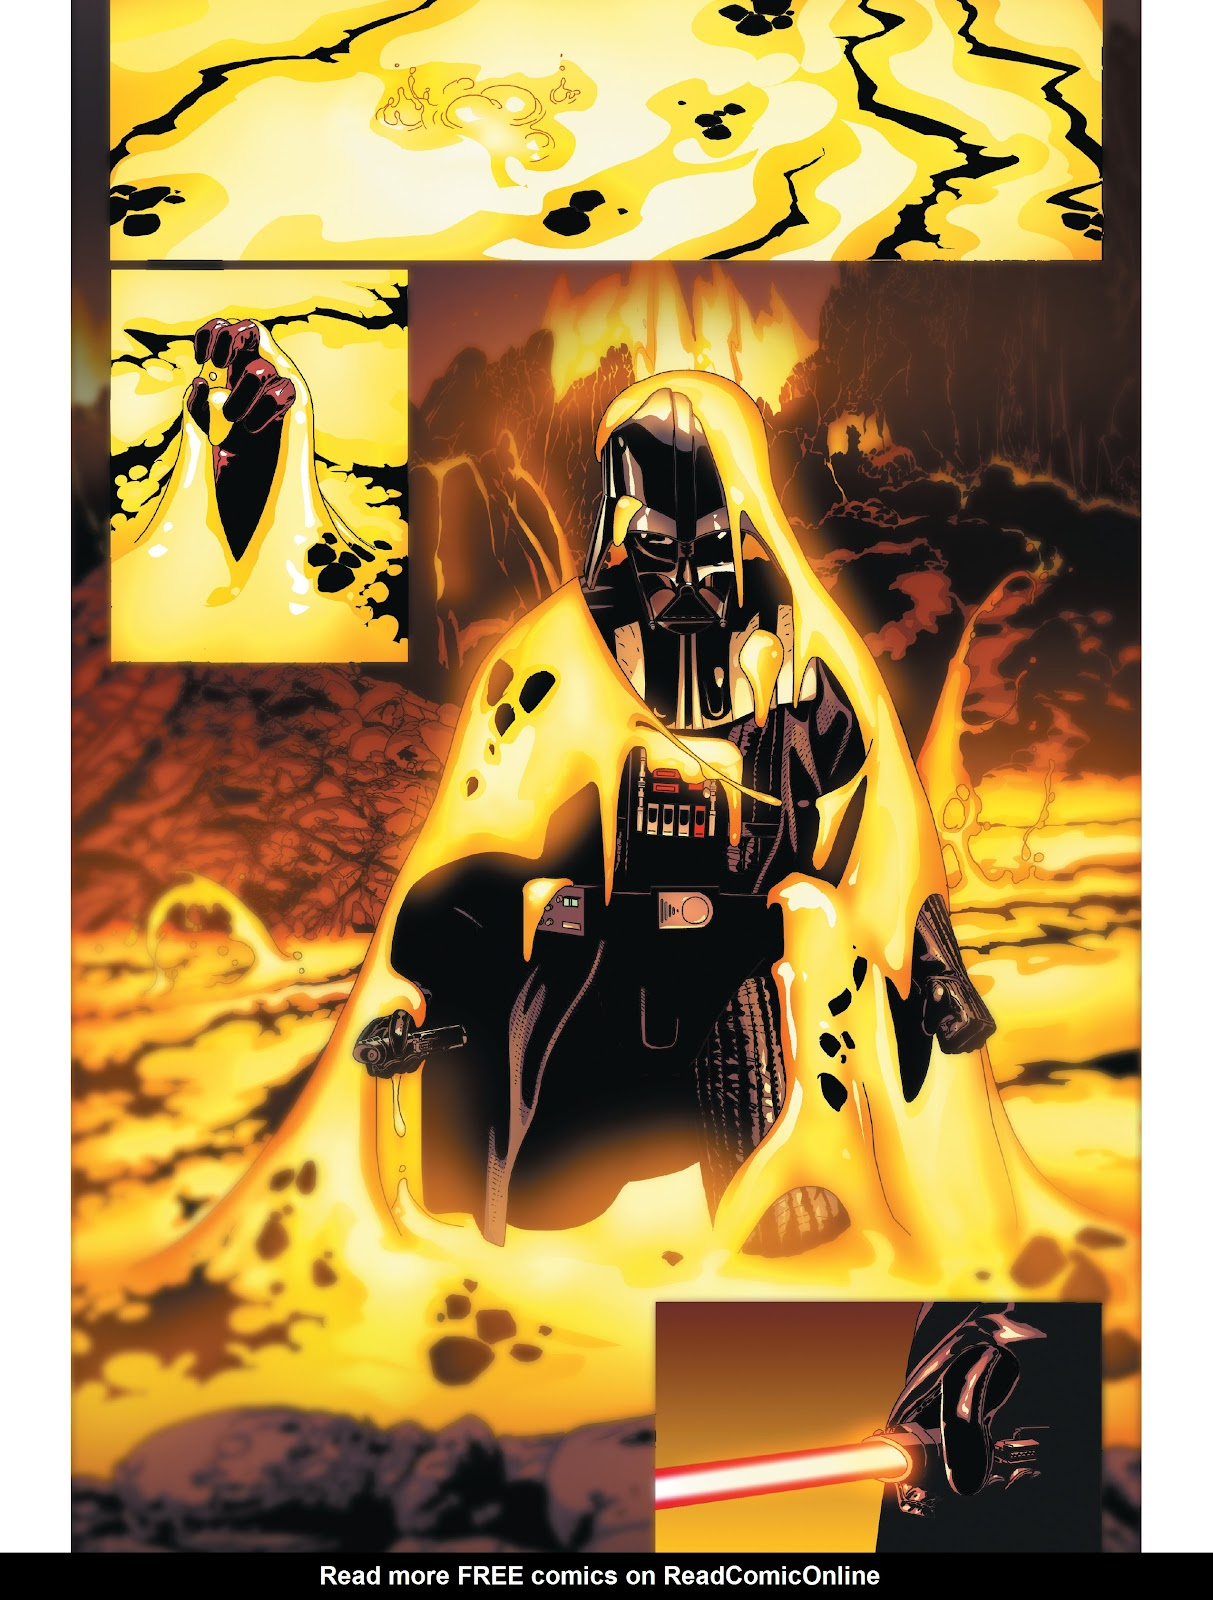 Read online The Marvel Art of Star Wars comic -  Issue # TPB (Part 1) - 82